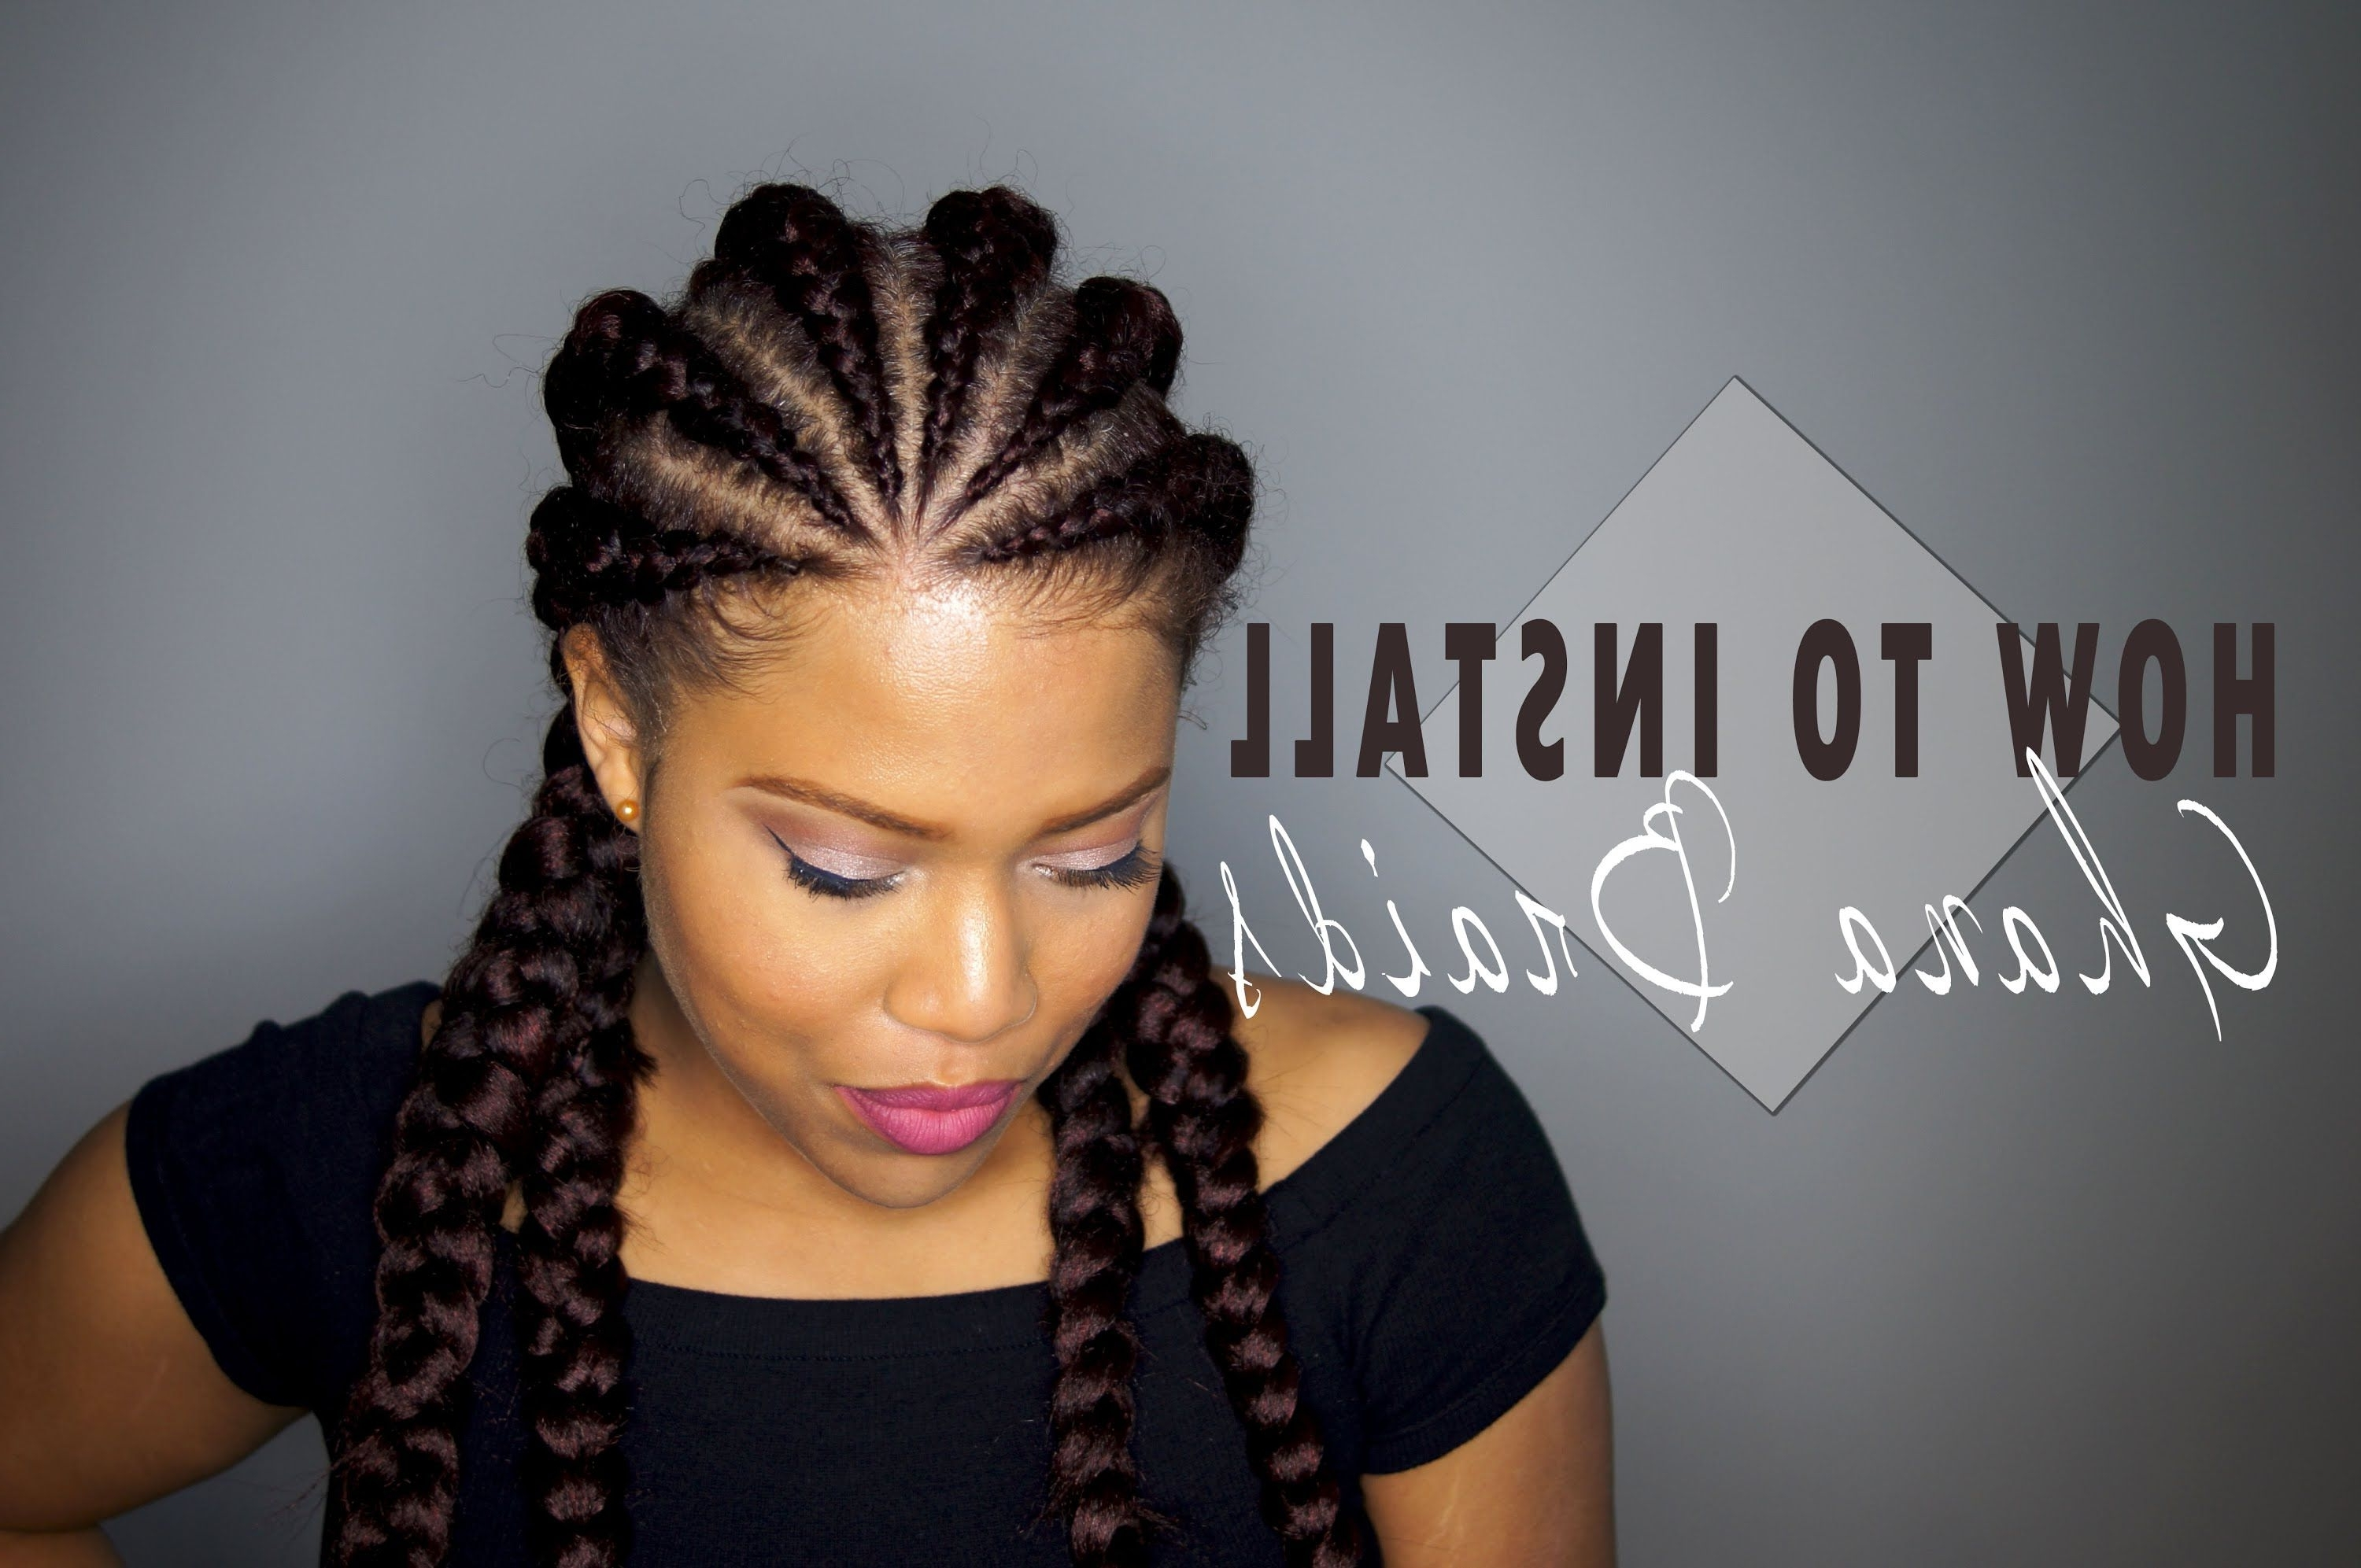 51 Latest Ghana Braids Hairstyles With Pictures (View 3 of 15)